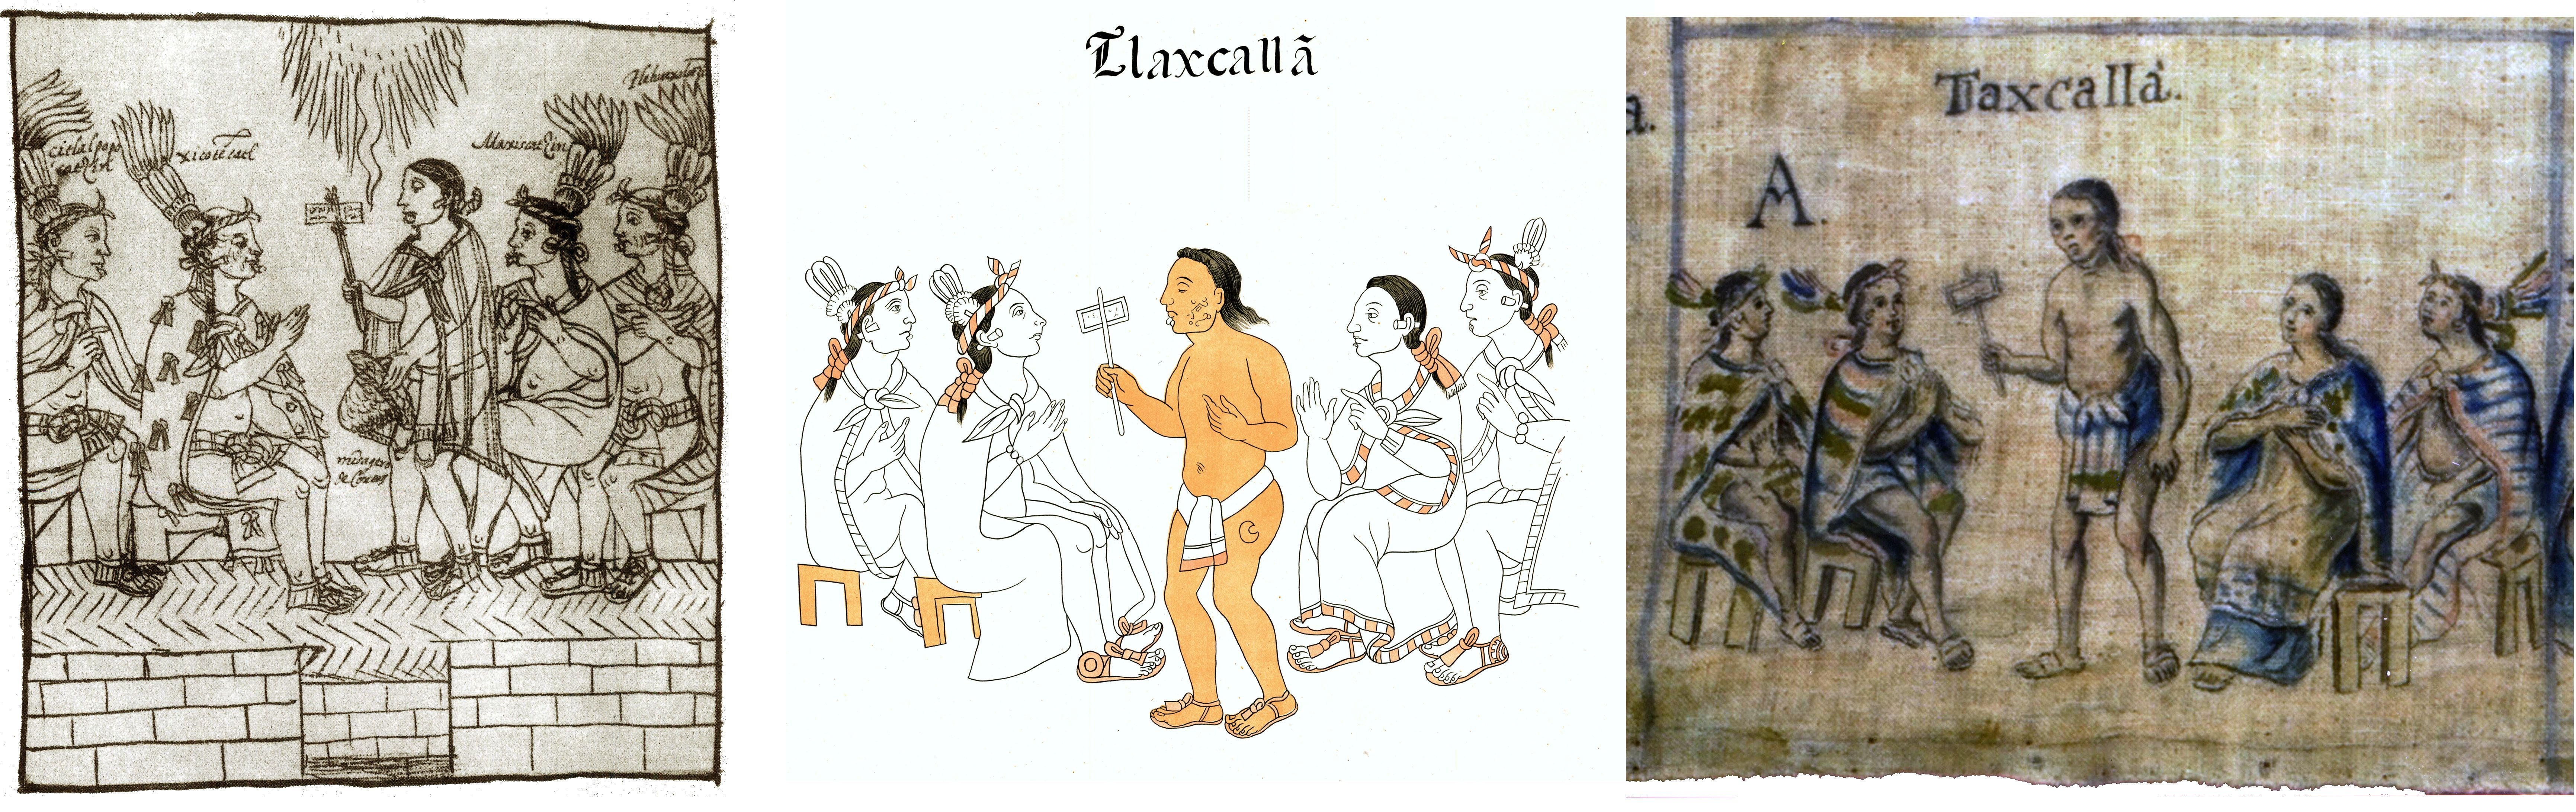 FIGURE 12. Comparison of cell 1 from the Lienzo de Tlaxcala with cognate scenes in the _Historia de Tlaxcala_ and the 1773 copy.